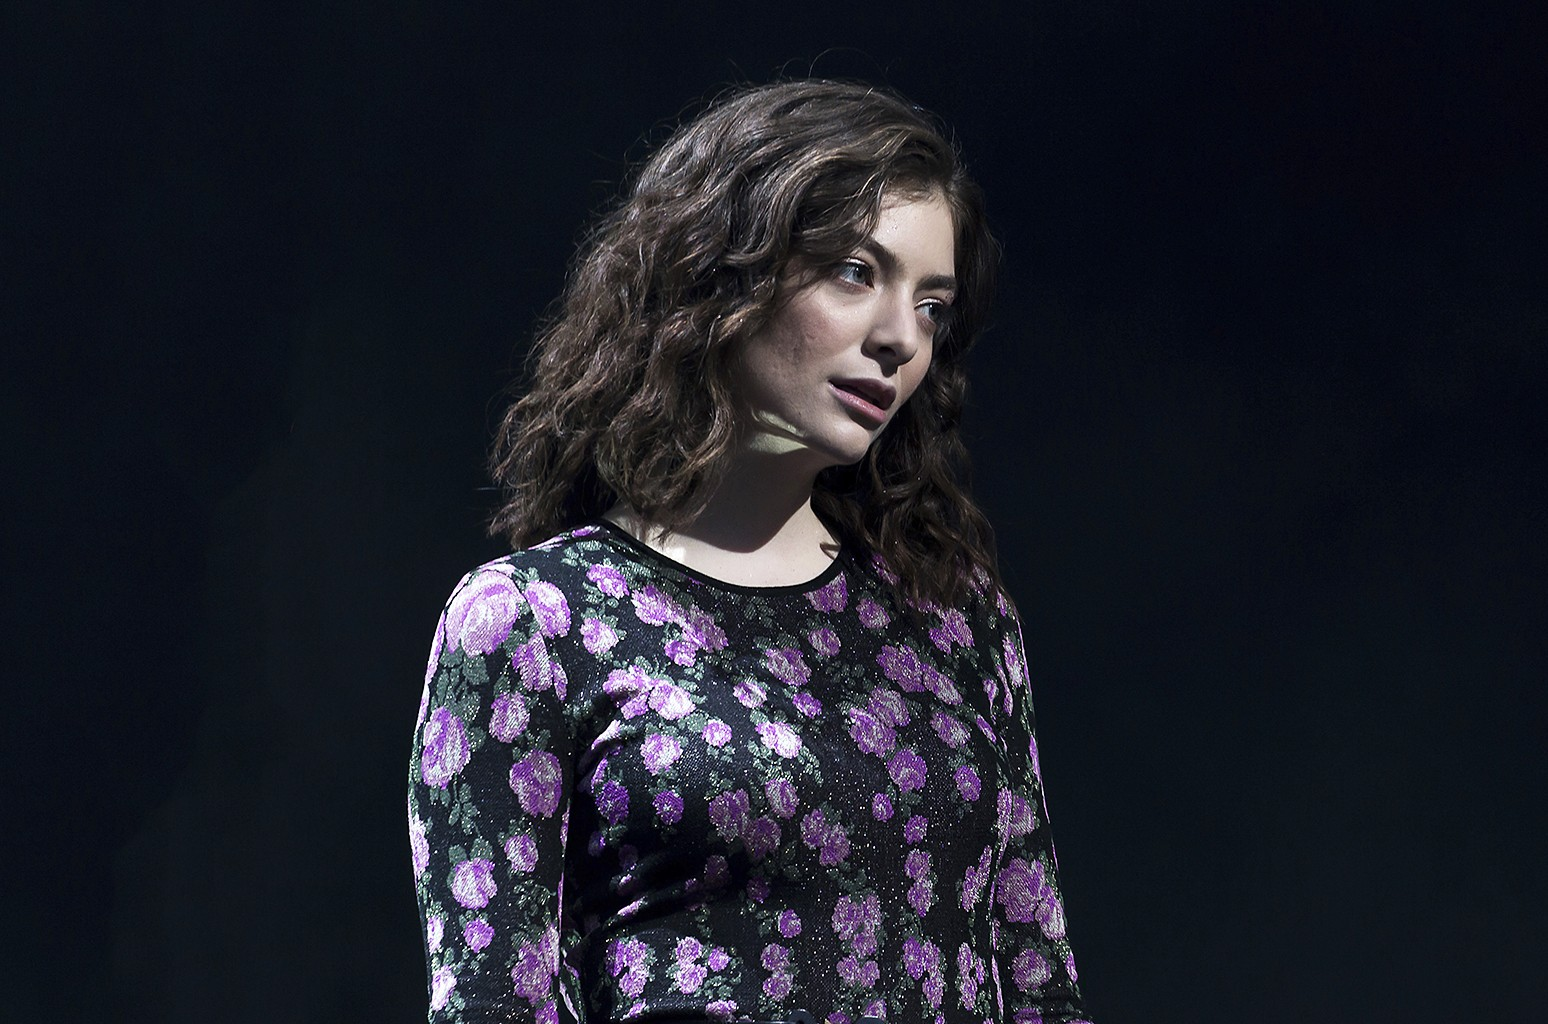 Lorde performs at the Glastonbury music festival at Worthy Farm in Somerset, England on June 23, 2017.